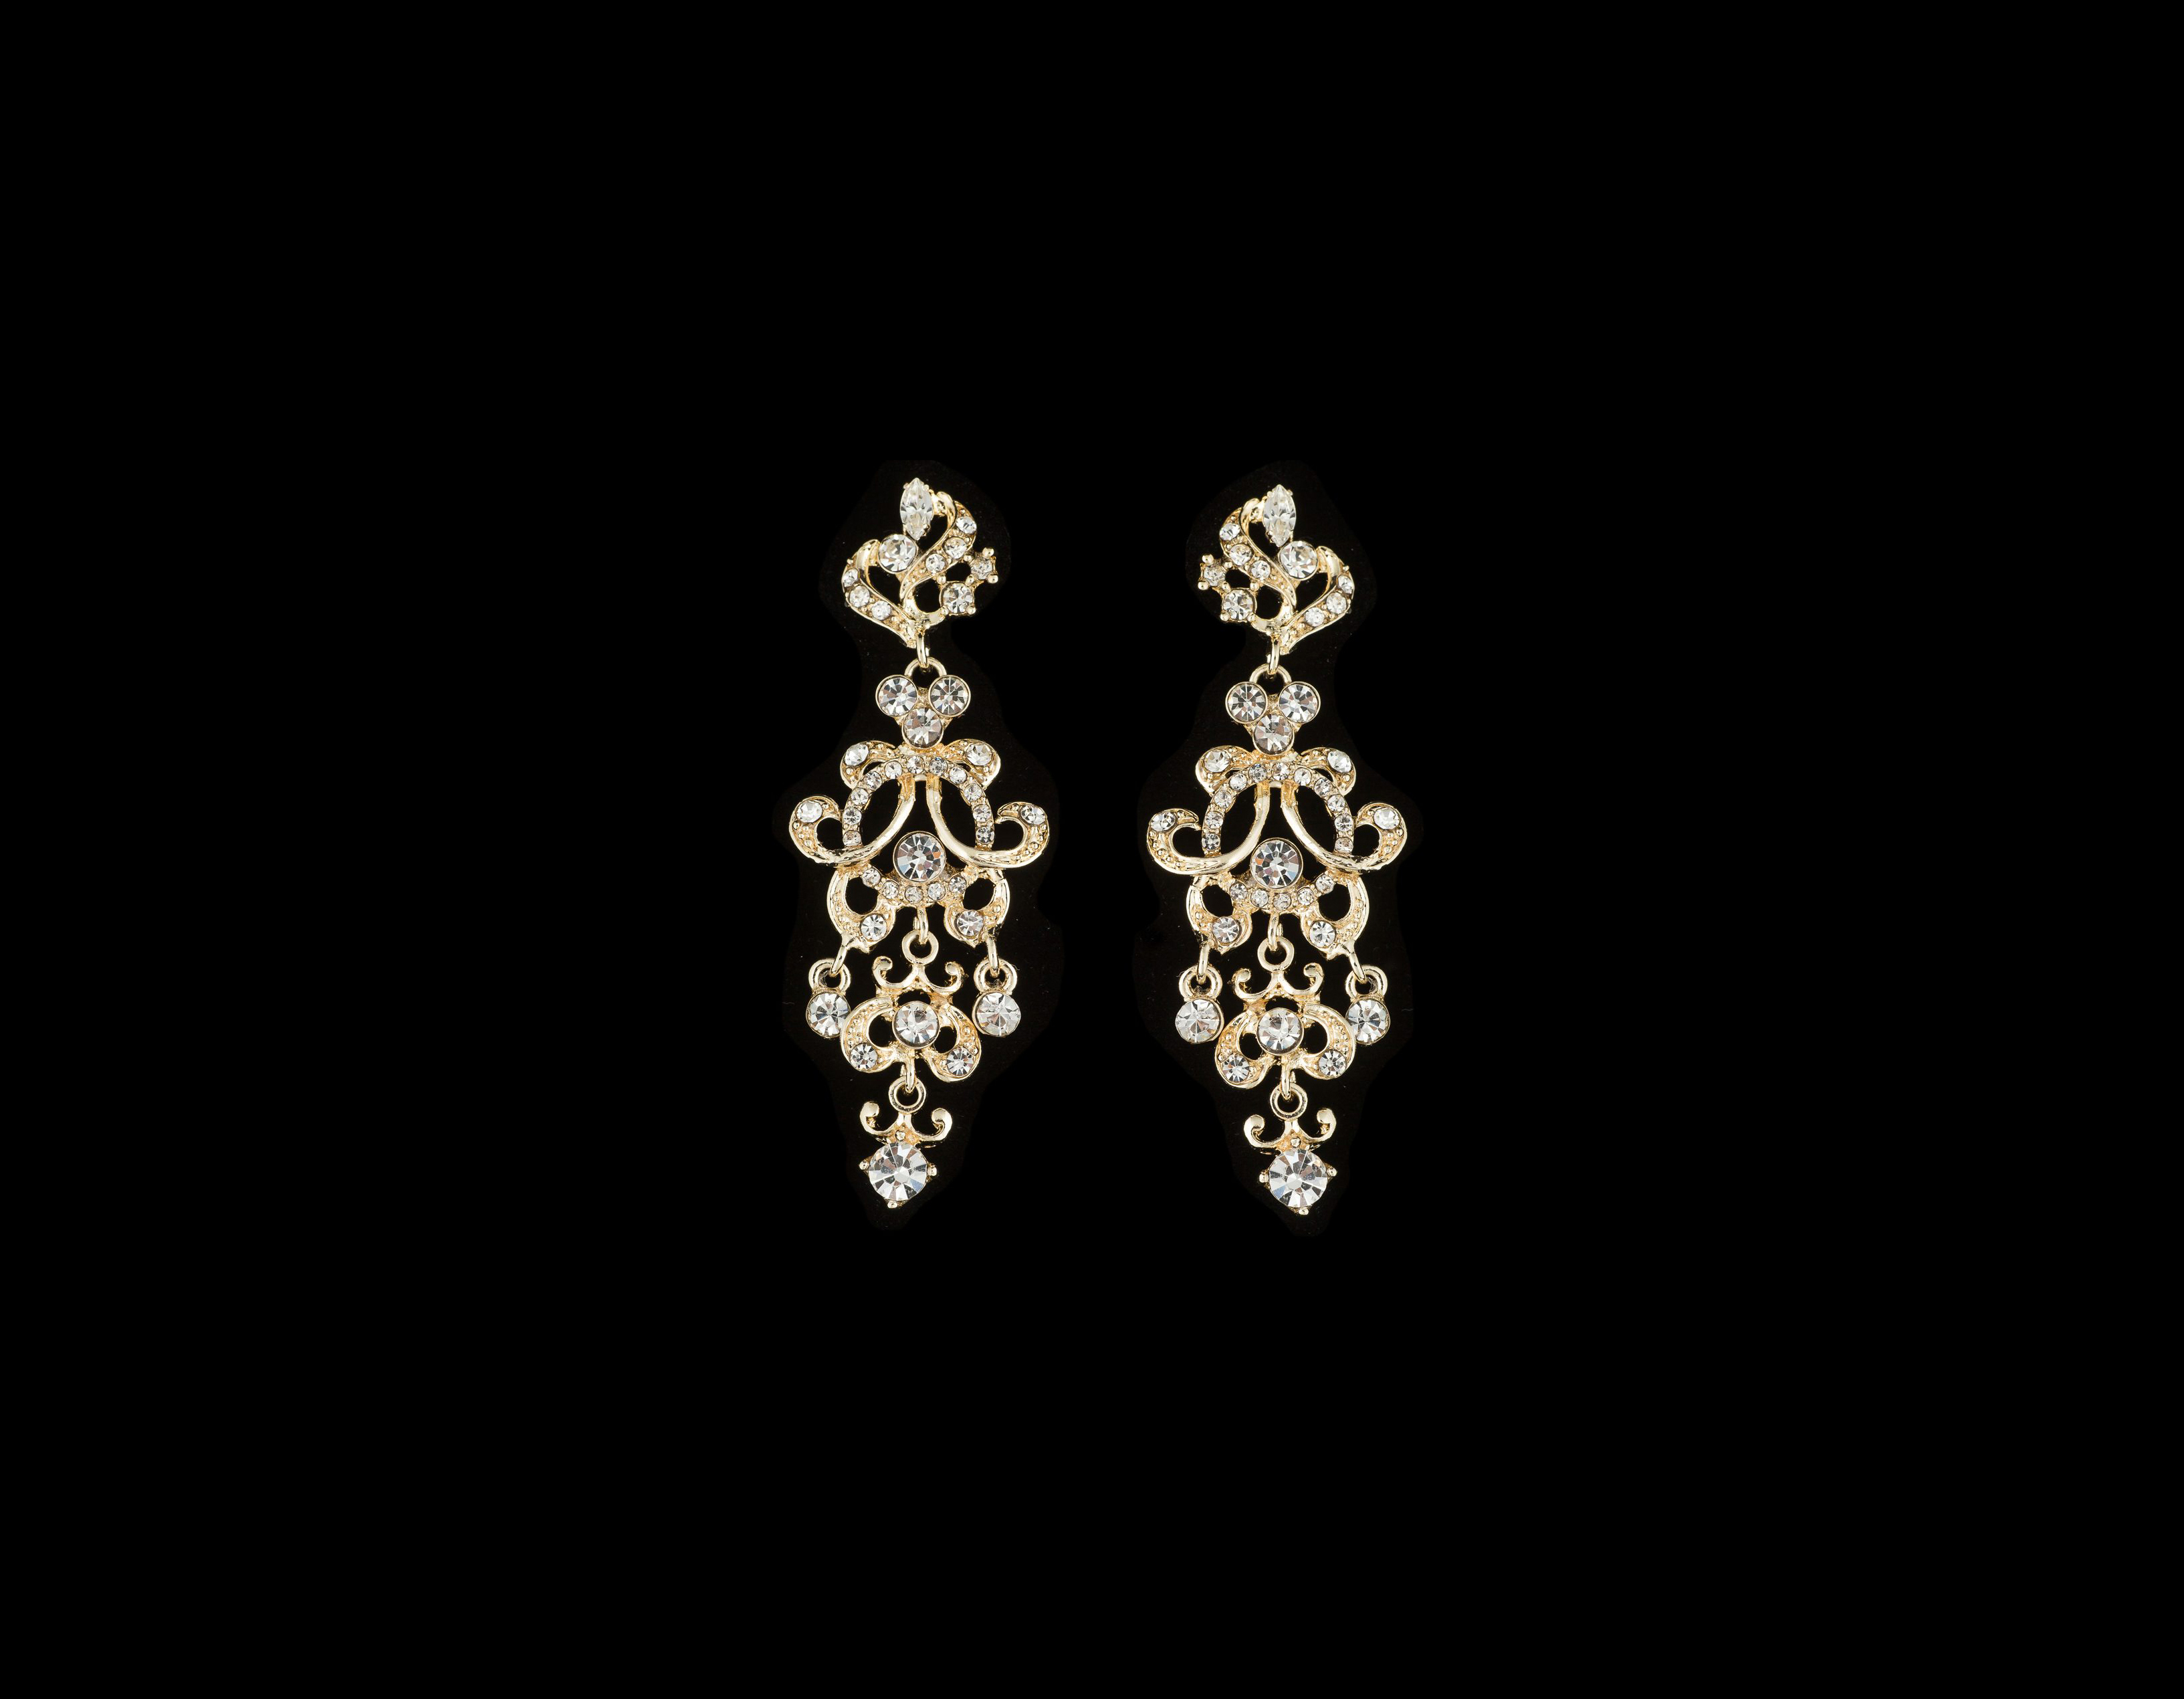 Bridal Classics Earrings MJ-263